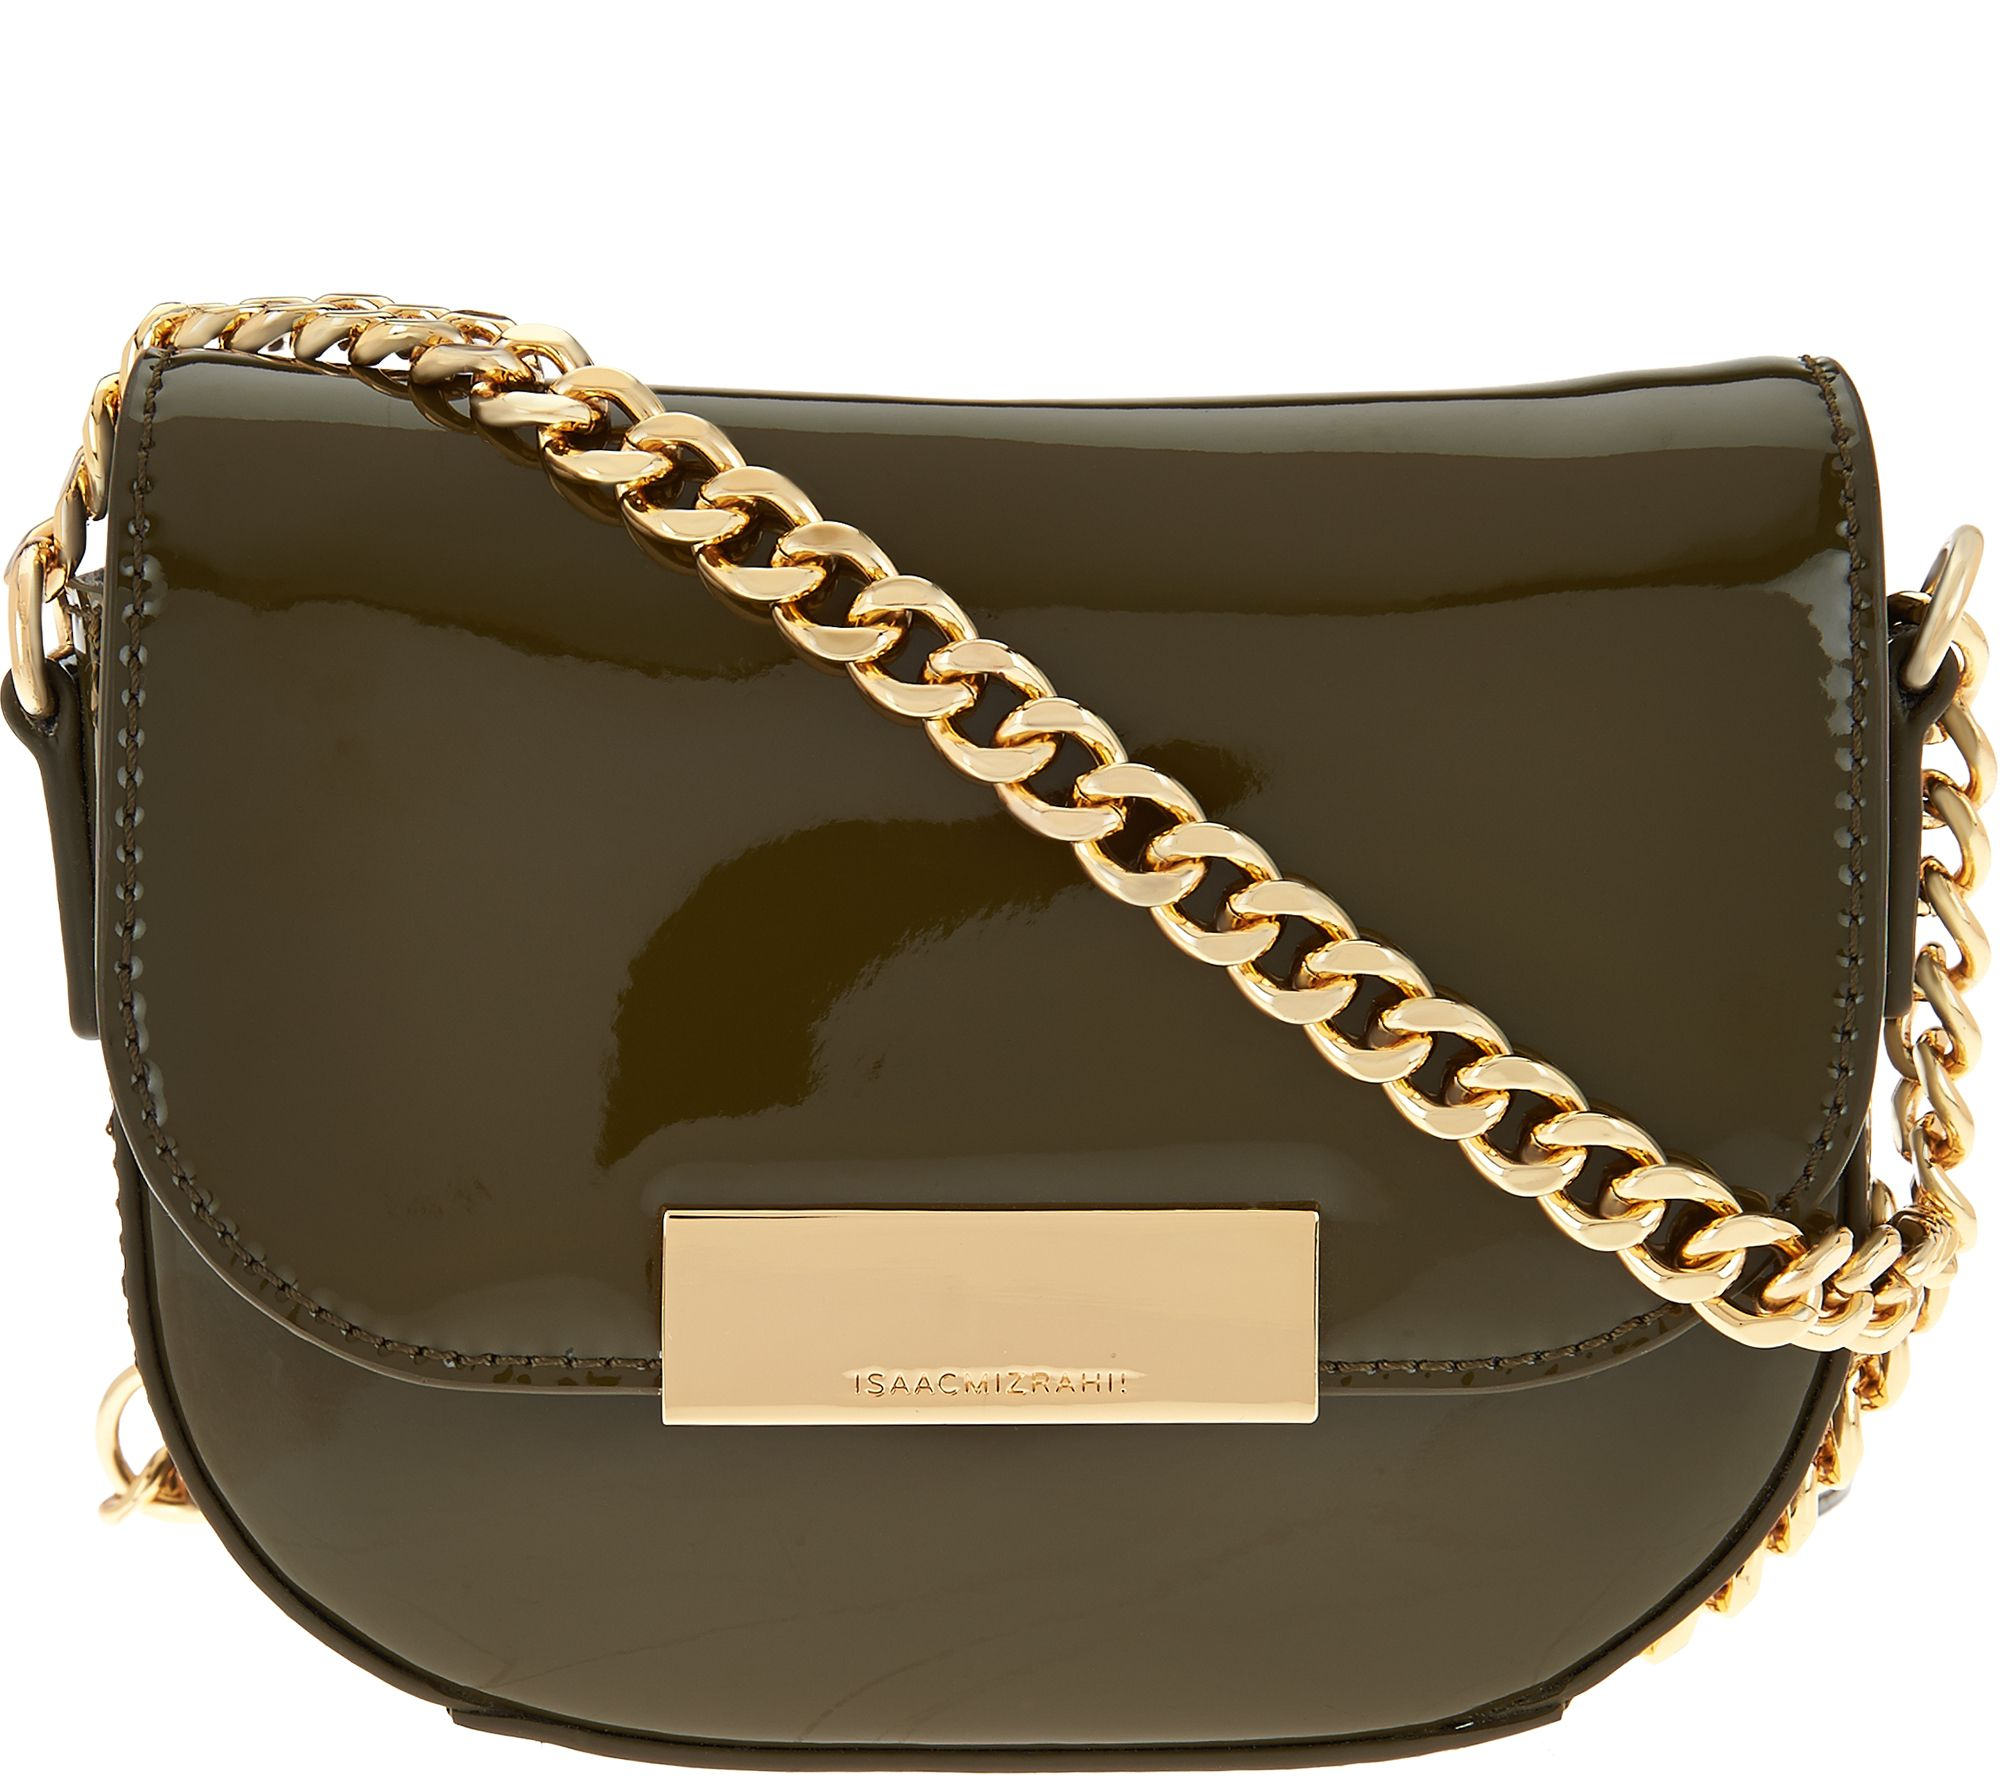 0a45bd435184 Isaac Mizrahi Live! Patent Leather Chain Strap Small Handbag - Page ...